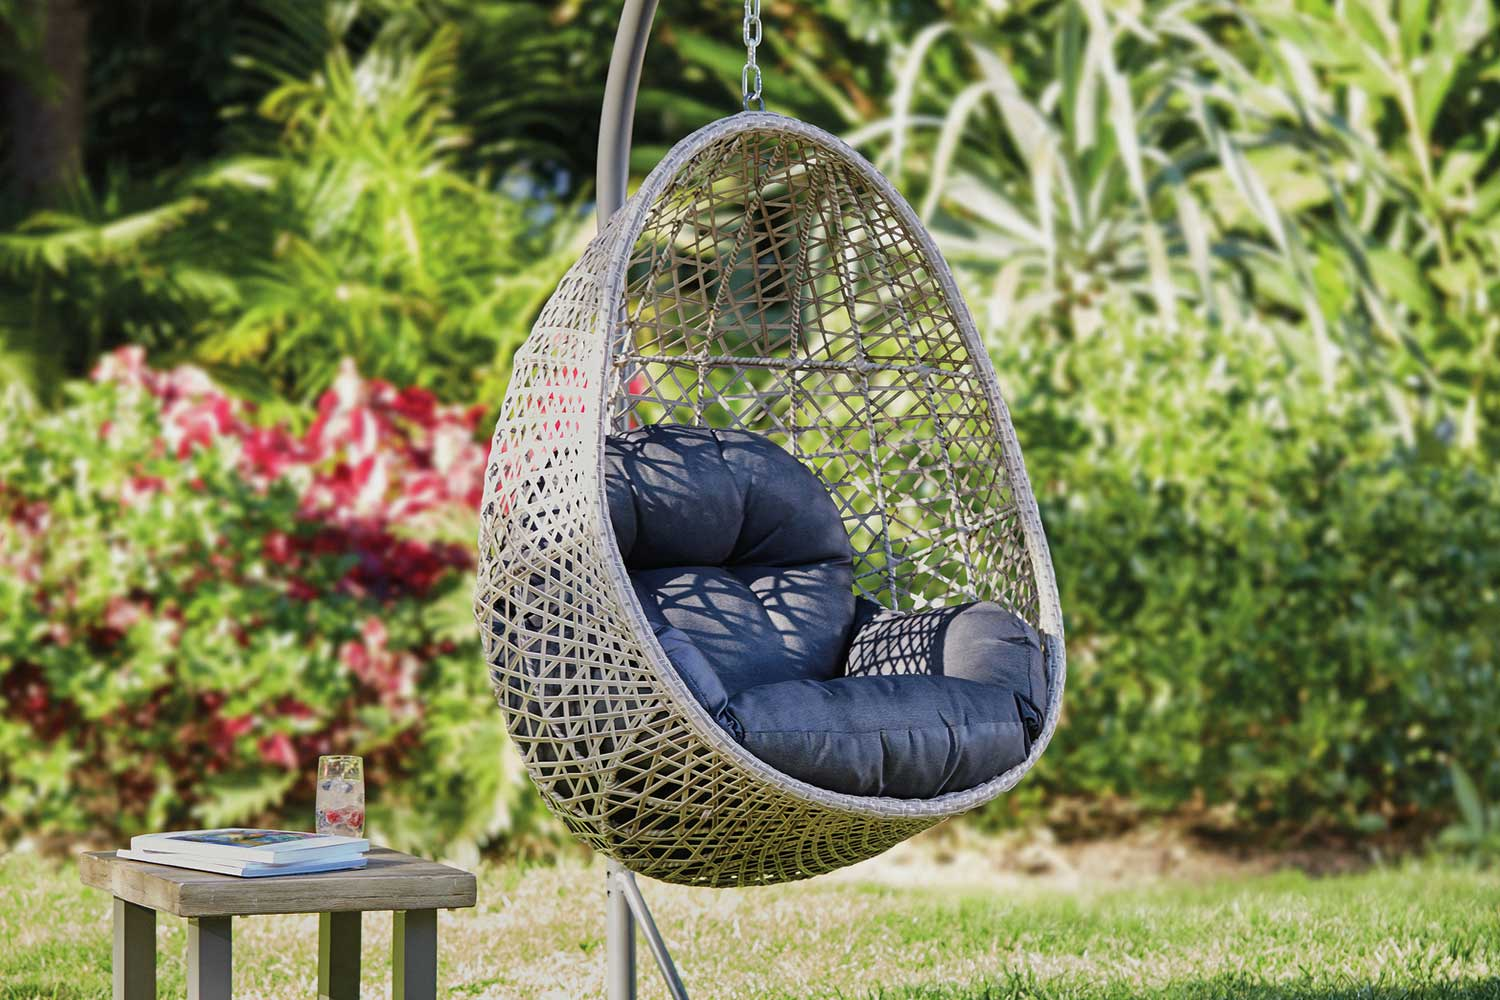 Aldis cheap outdoor furniture and entertaining sale this weekend home beautiful magazine australia